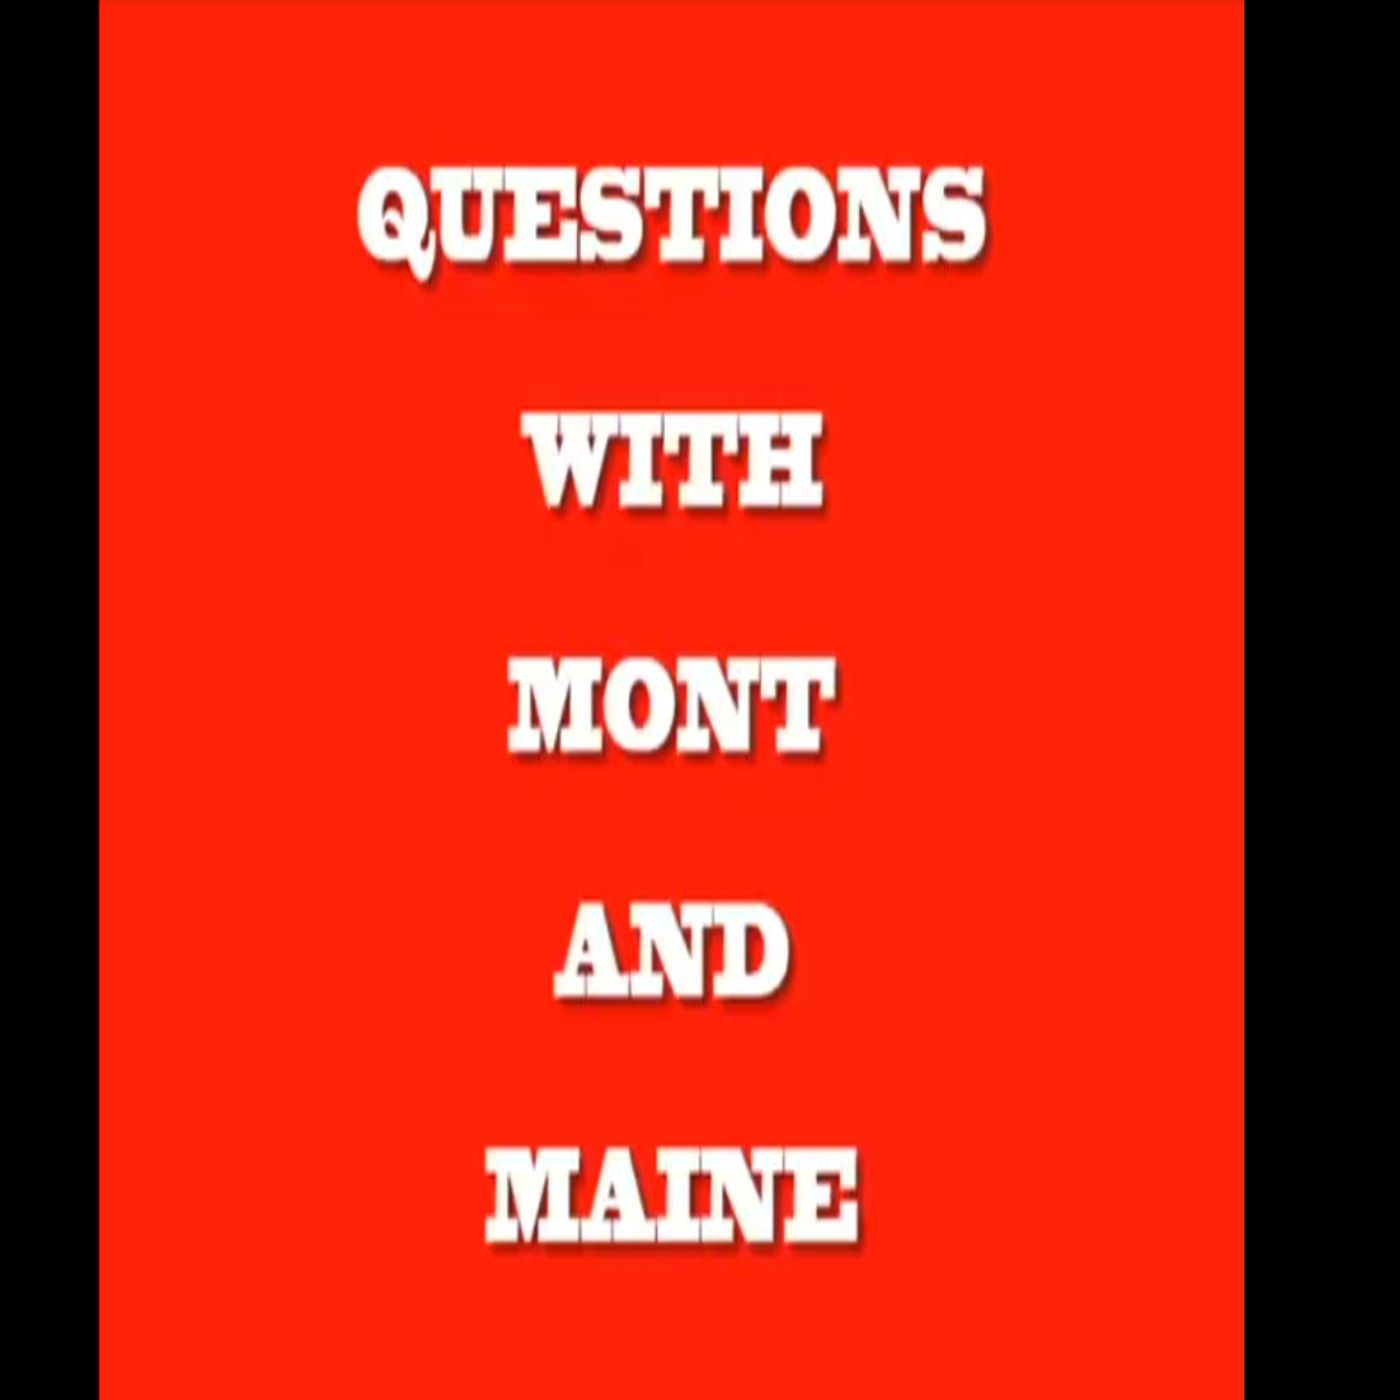 Questions with MONT and MAINE